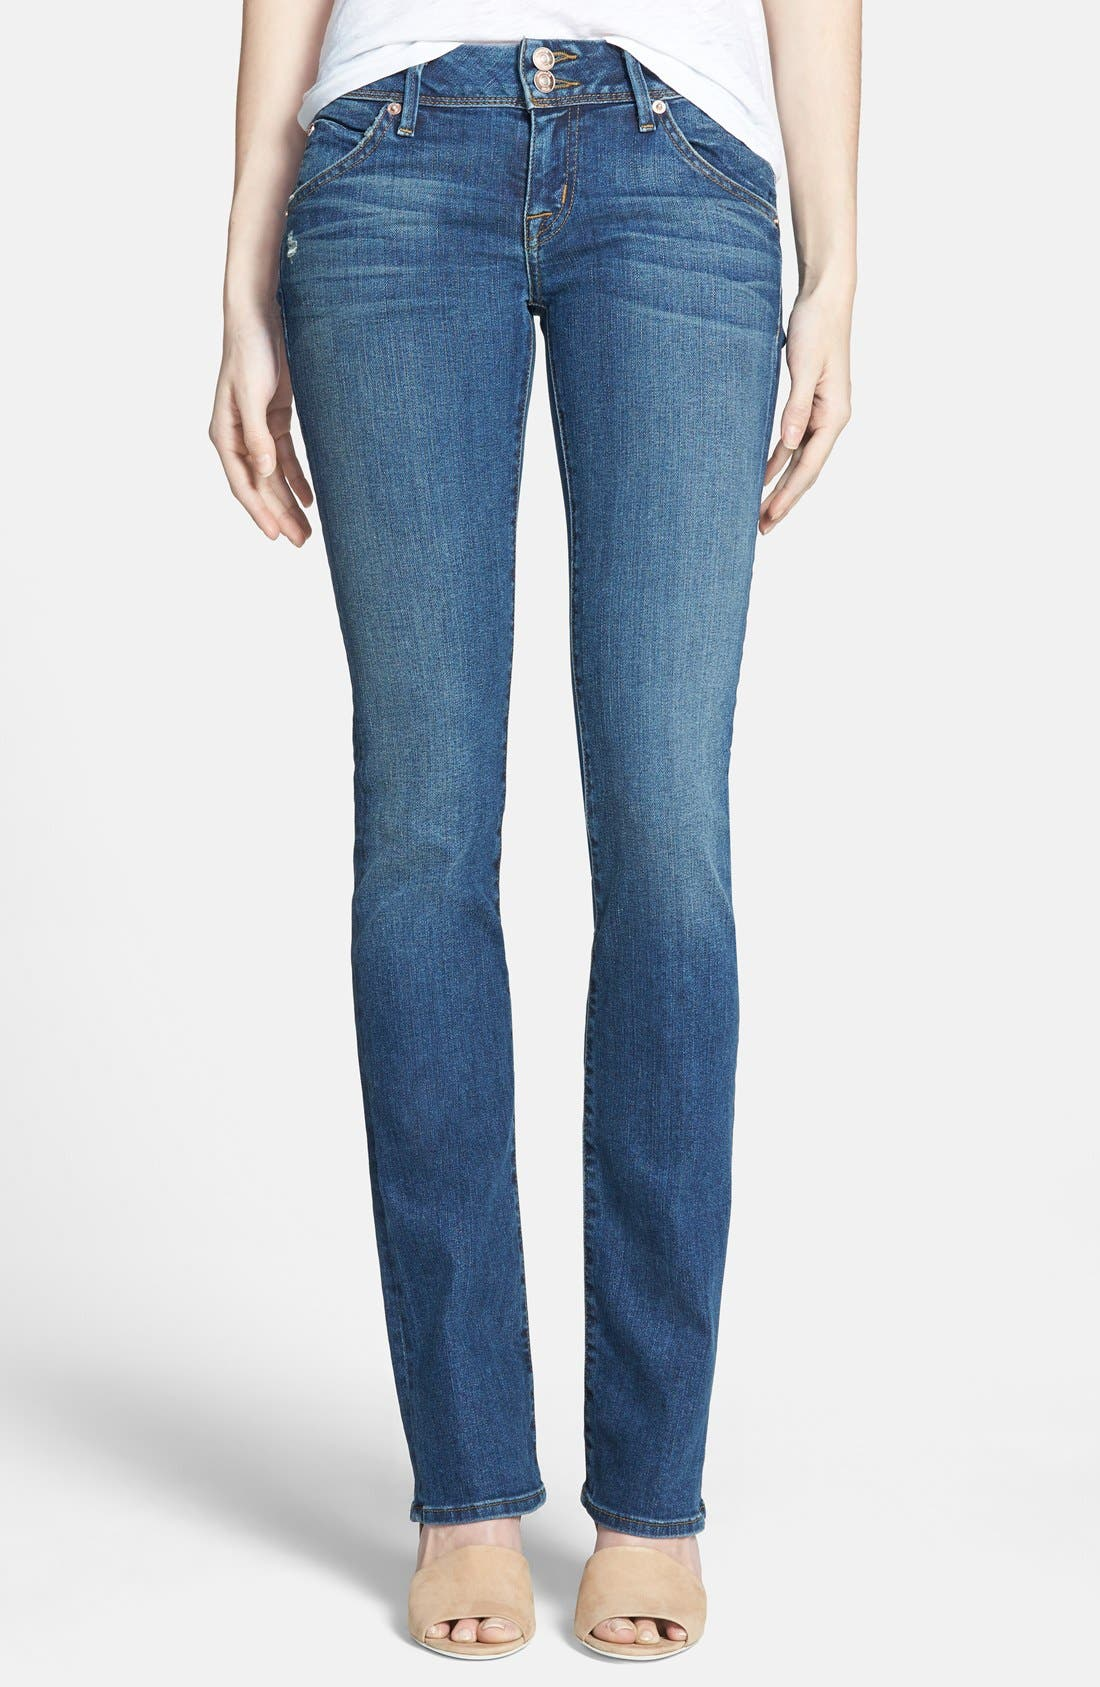 Alternate Image 1 Selected - Hudson Jeans 'Beth Baby Boot' Skinny Jeans (Hollywoodland)